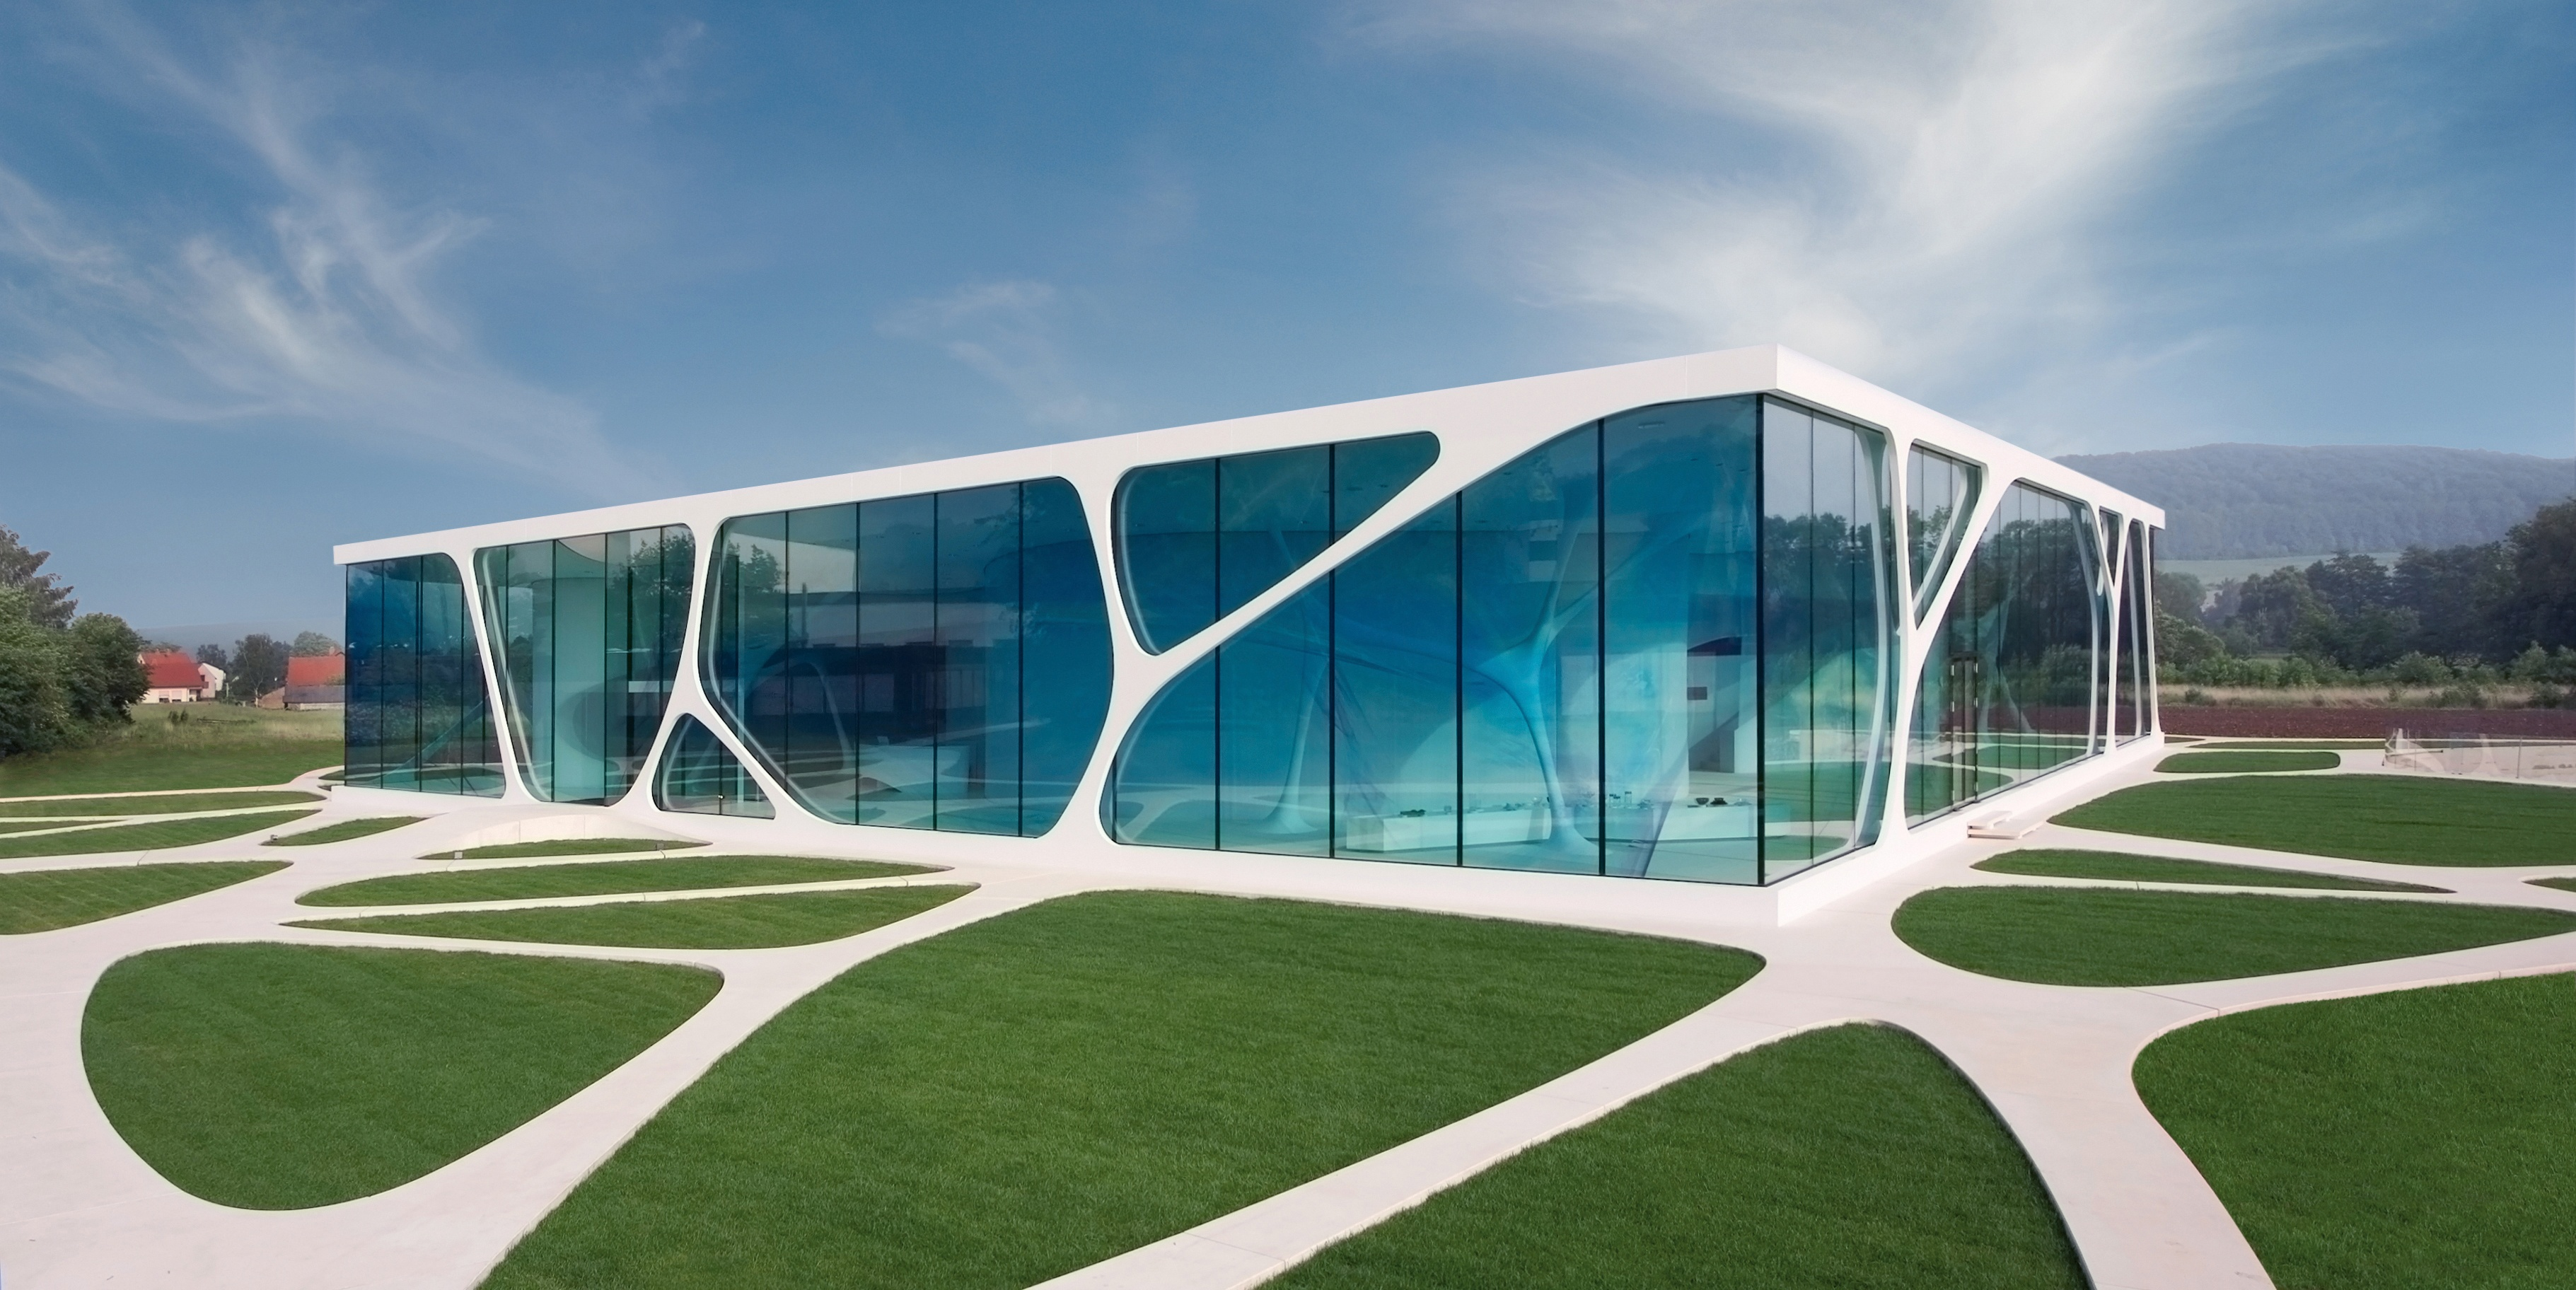 How is 3D Printing affecting Architecture?